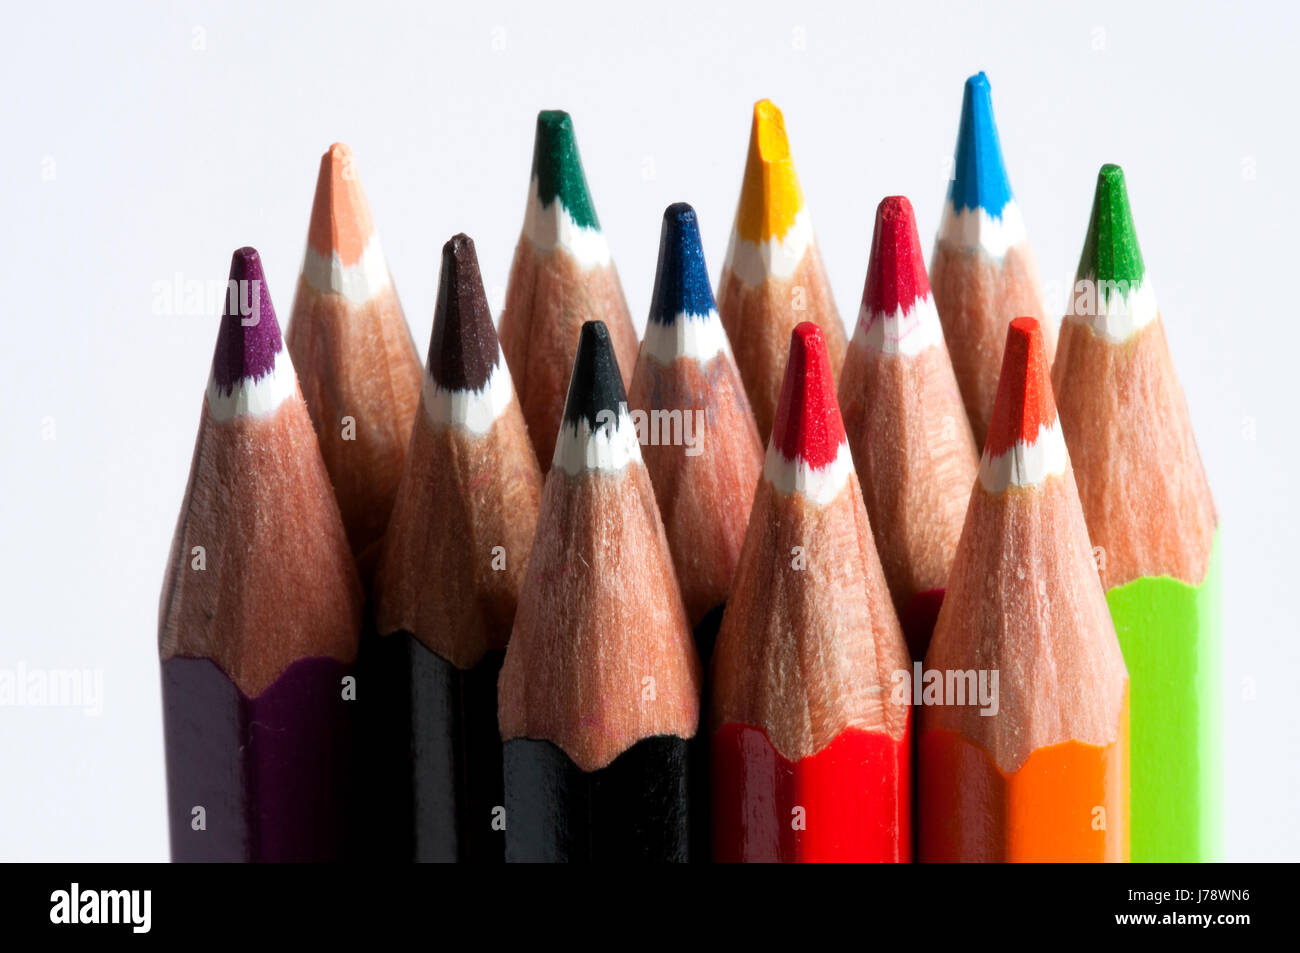 upright vertical color pencils - Stock Image